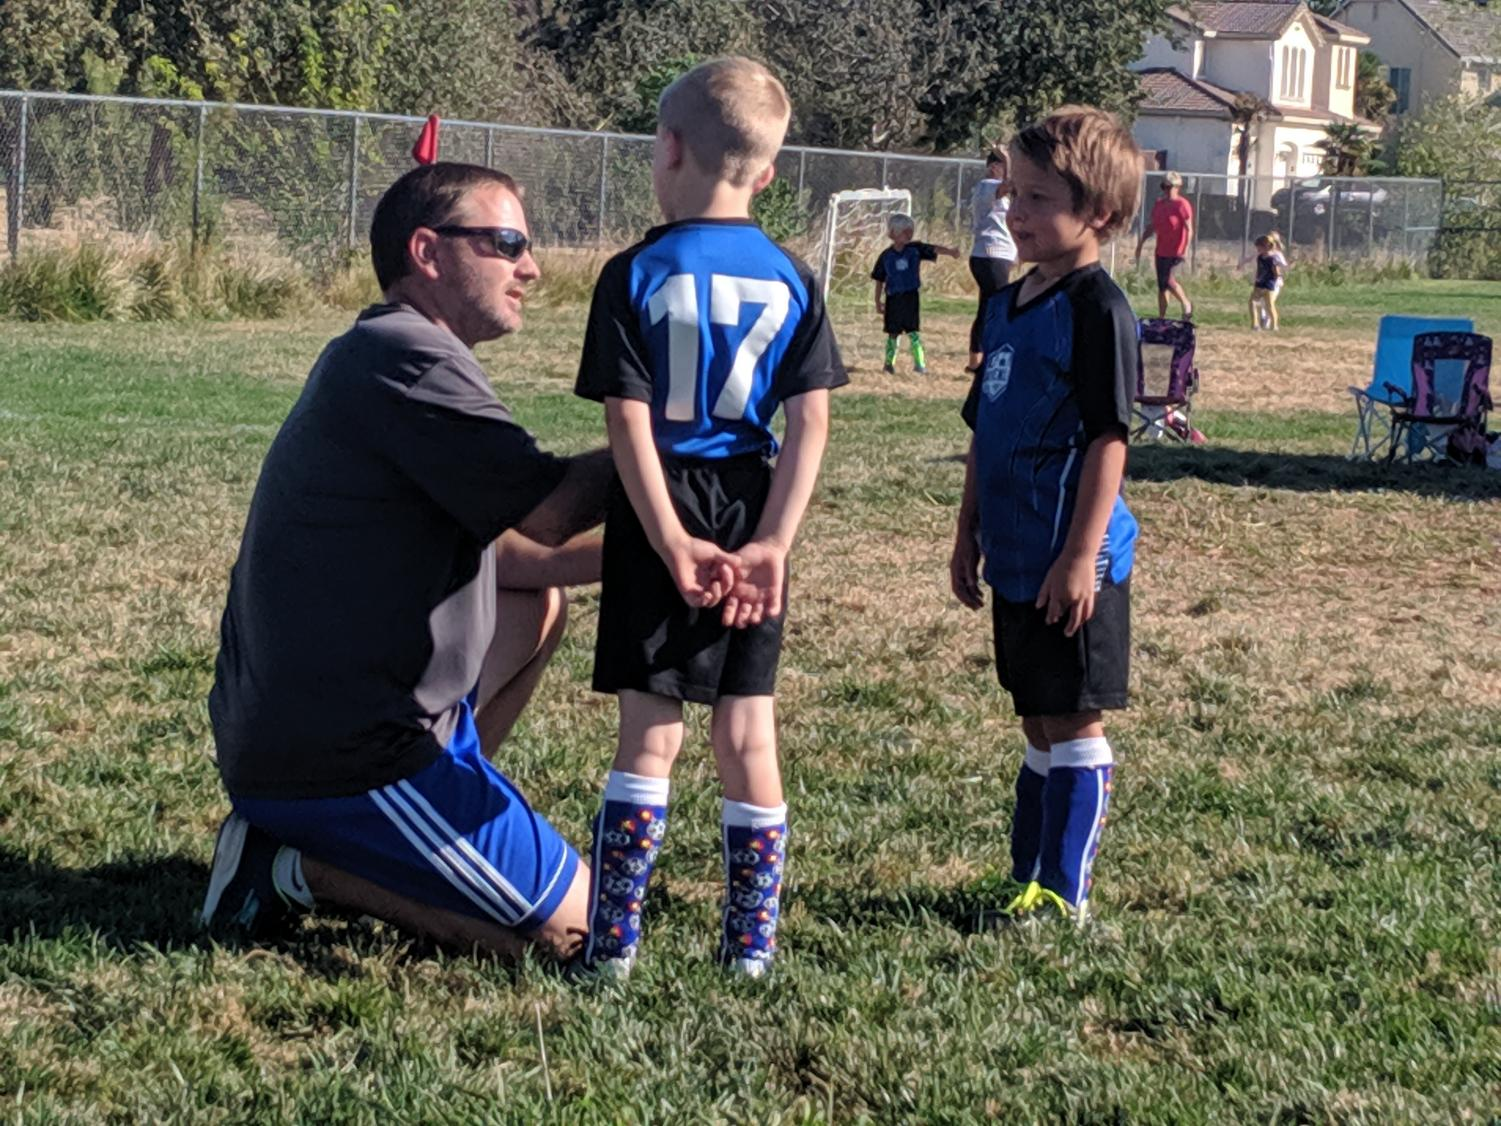 Teacher Kevin Fagan plays in a recreational soccer league and coaches both of his kids in soccer. Through the sport, he's been able to strengthen friendships with teammates and spend time with his children.